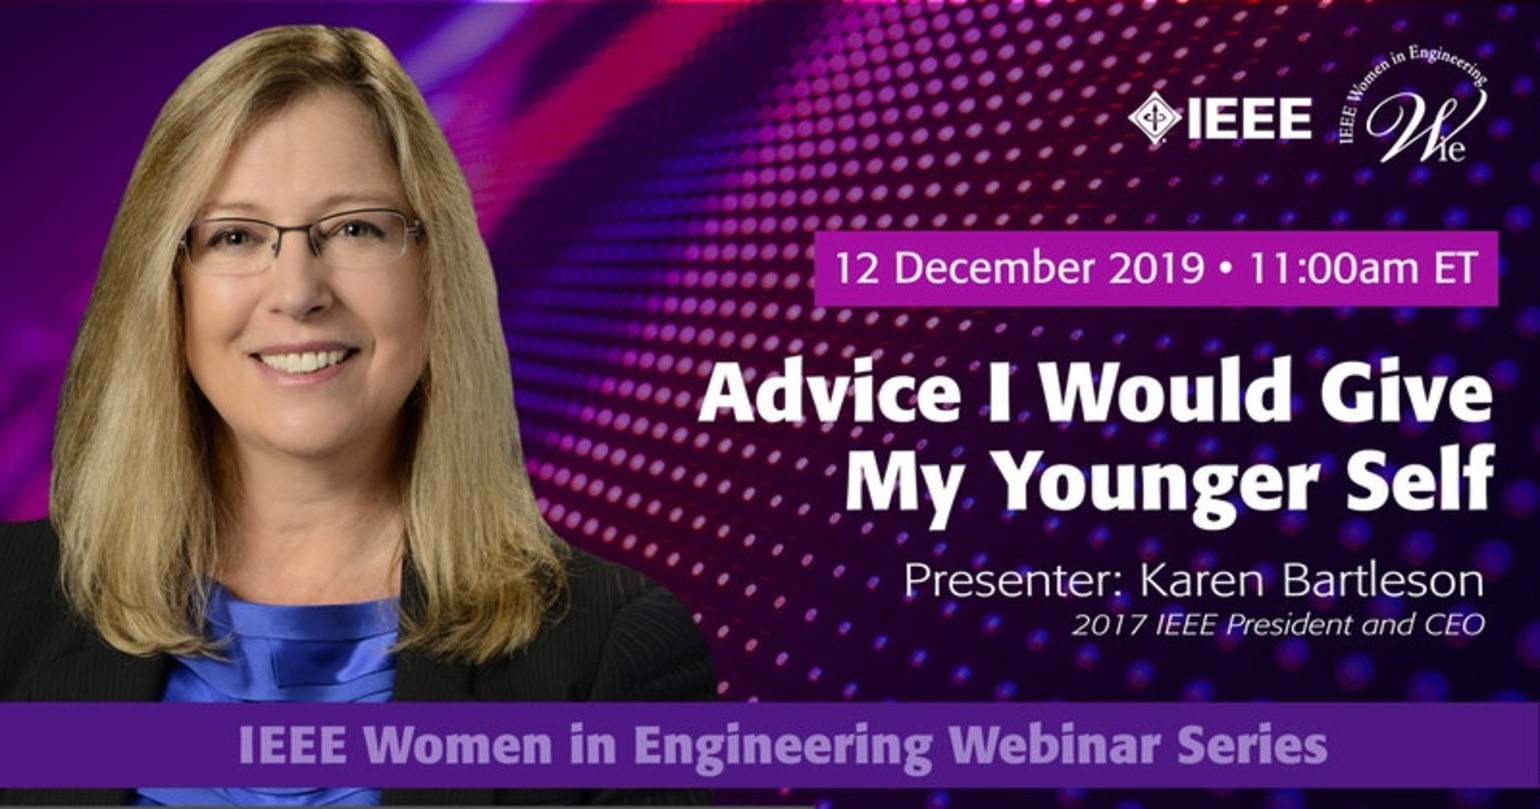 Advice I Would Give My Younger Self - Karen Bartleson - IEEE WIE Webinar Series